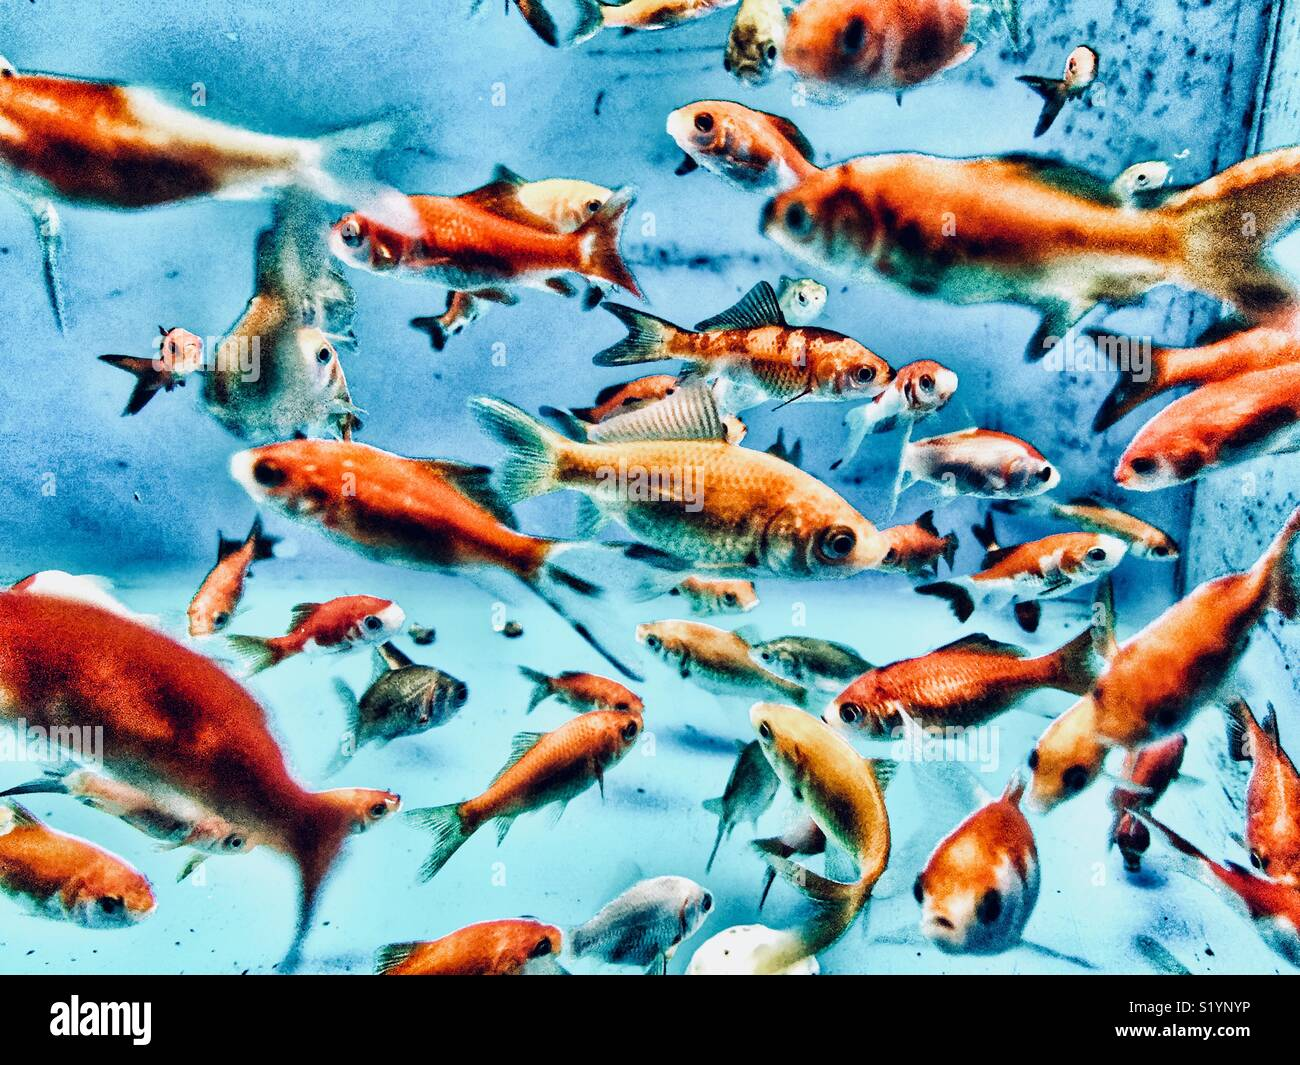 View of a large number of goldfish in an aquarium - Stock Image